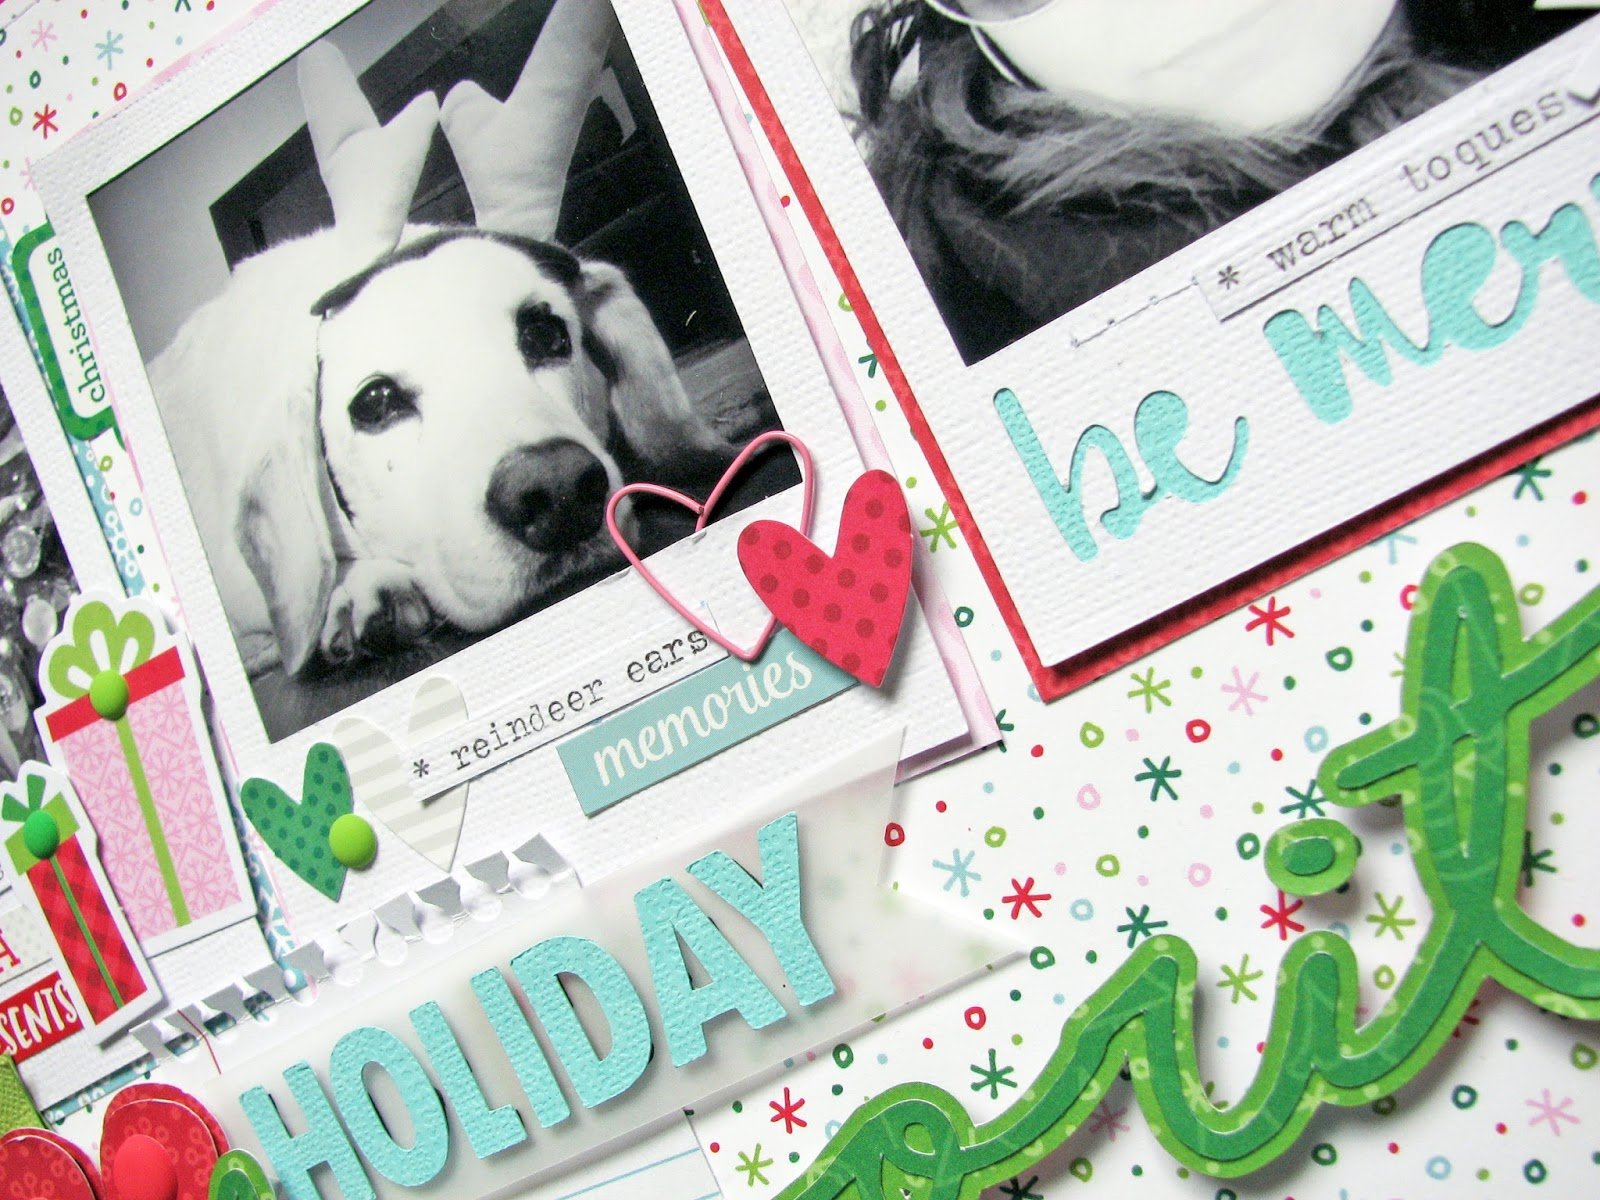 How to scrapbook a holiday - Each Issue Dt Members Get Assignments To Work On Specific Themes Or Techniques Etc I Was Lucky Enough To Just Have To Do A Holiday Themed Layout